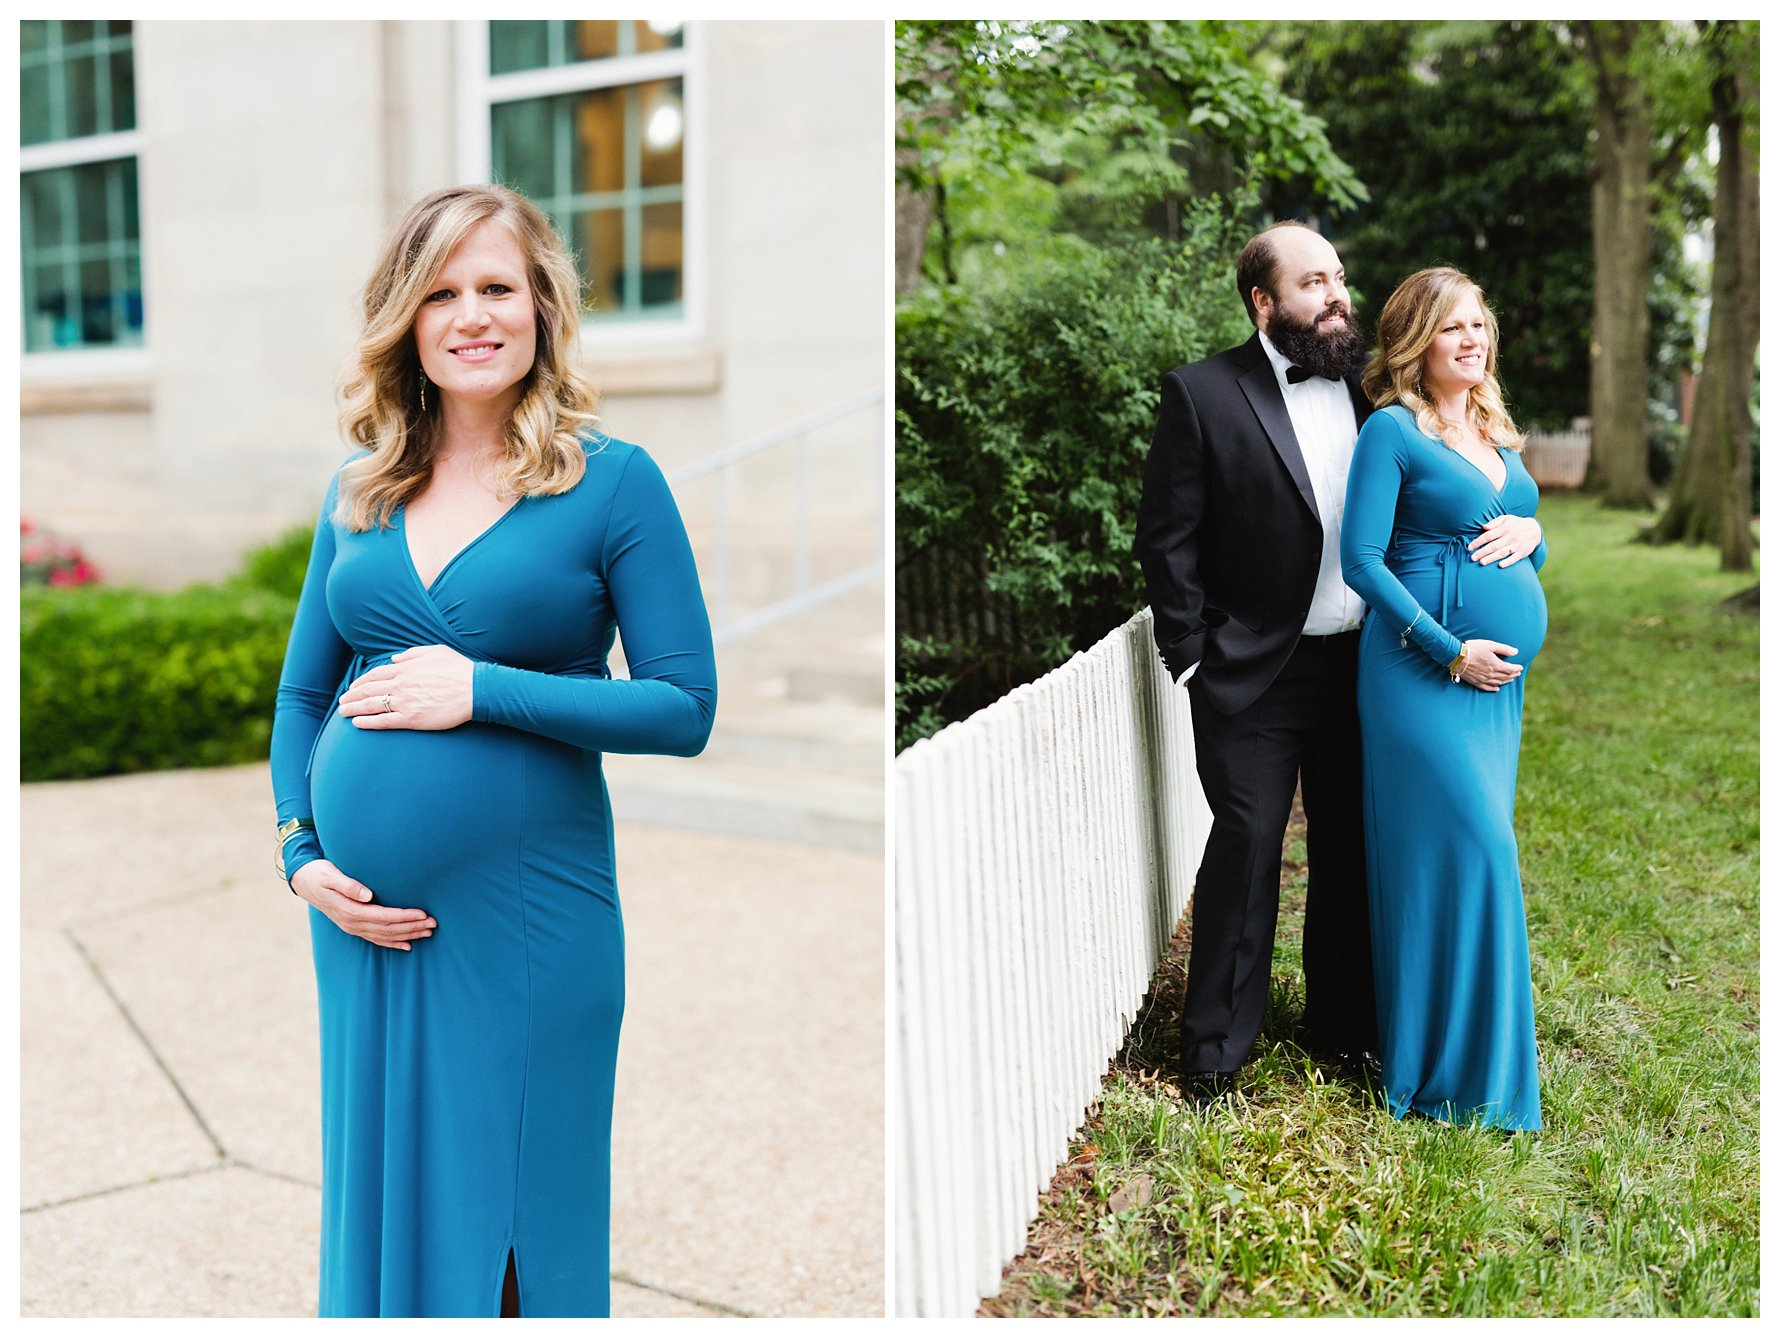 A Formal and Classic Look for Maternity Photos